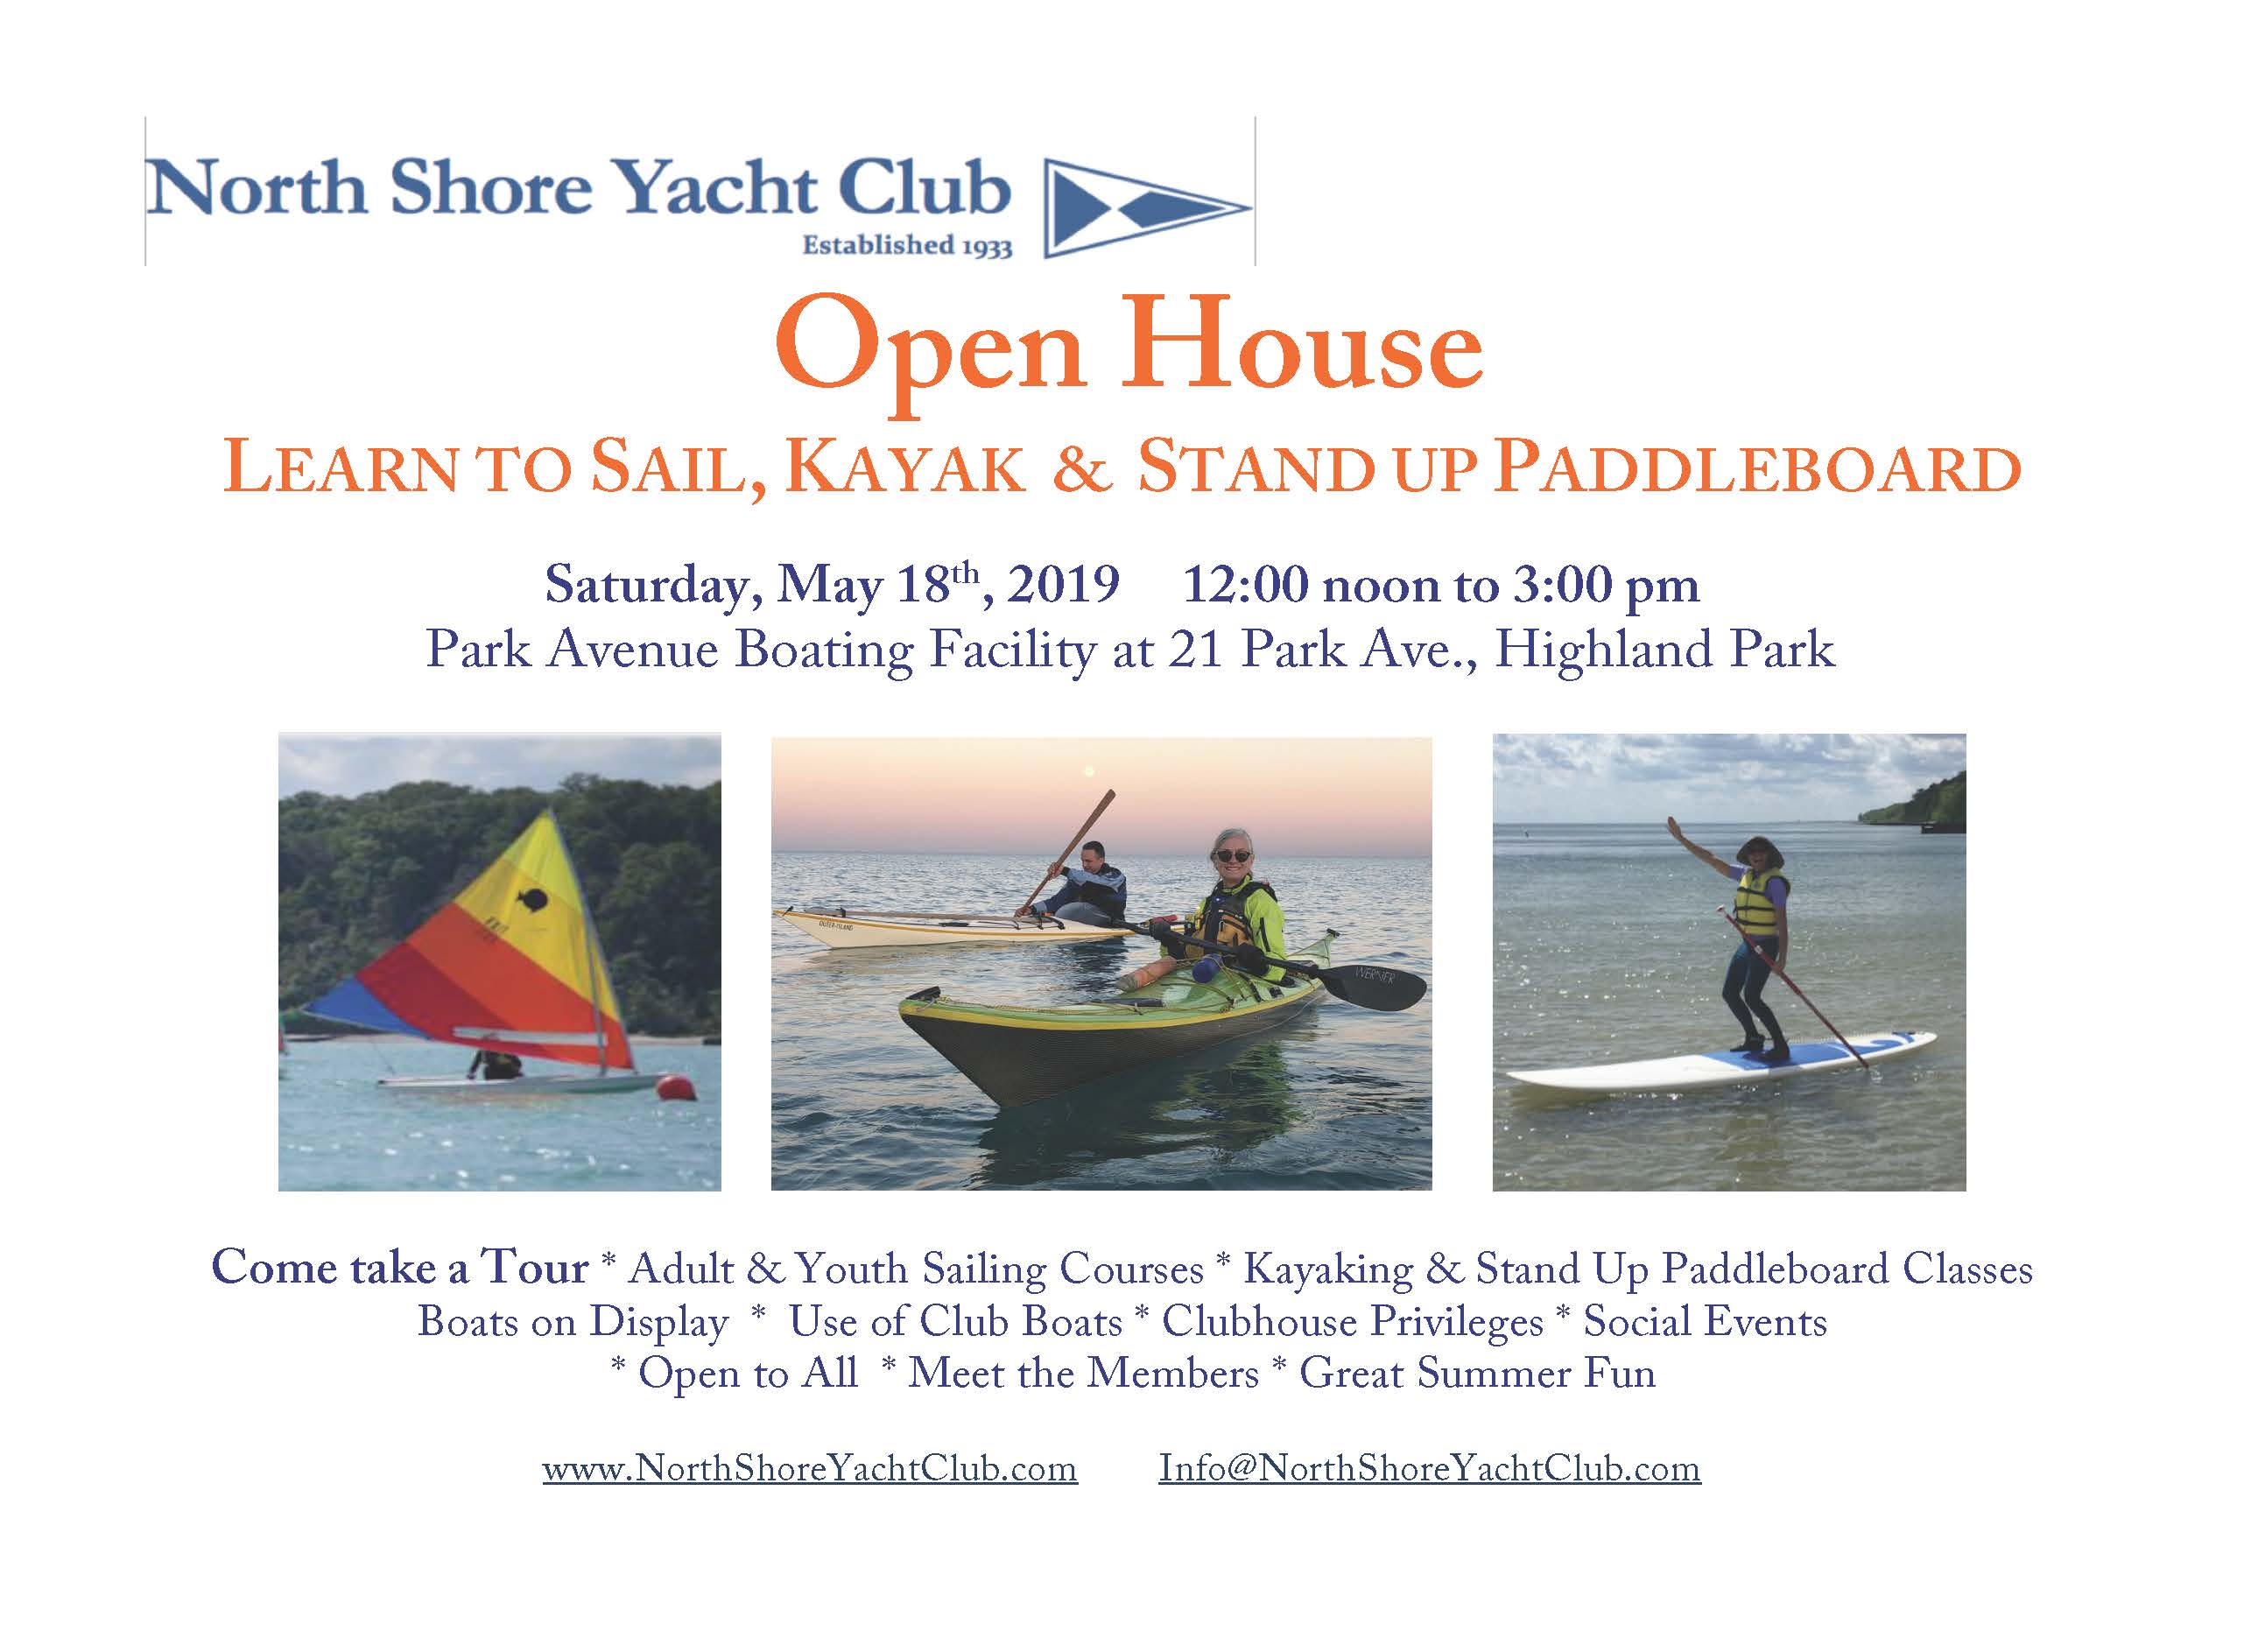 North Shore Yacht Club Open House